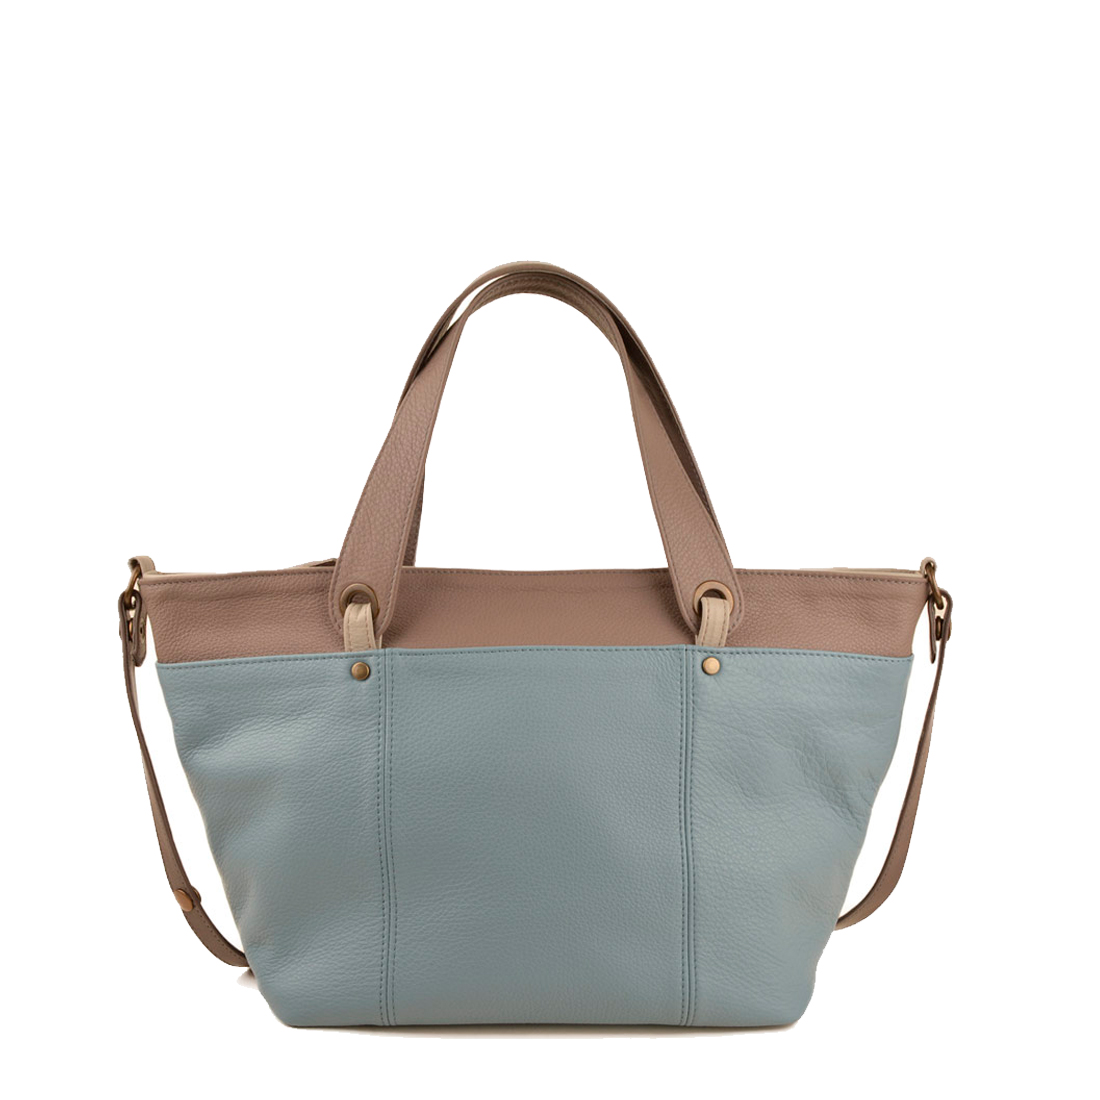 Lucy Niagra Leather Tote Bag